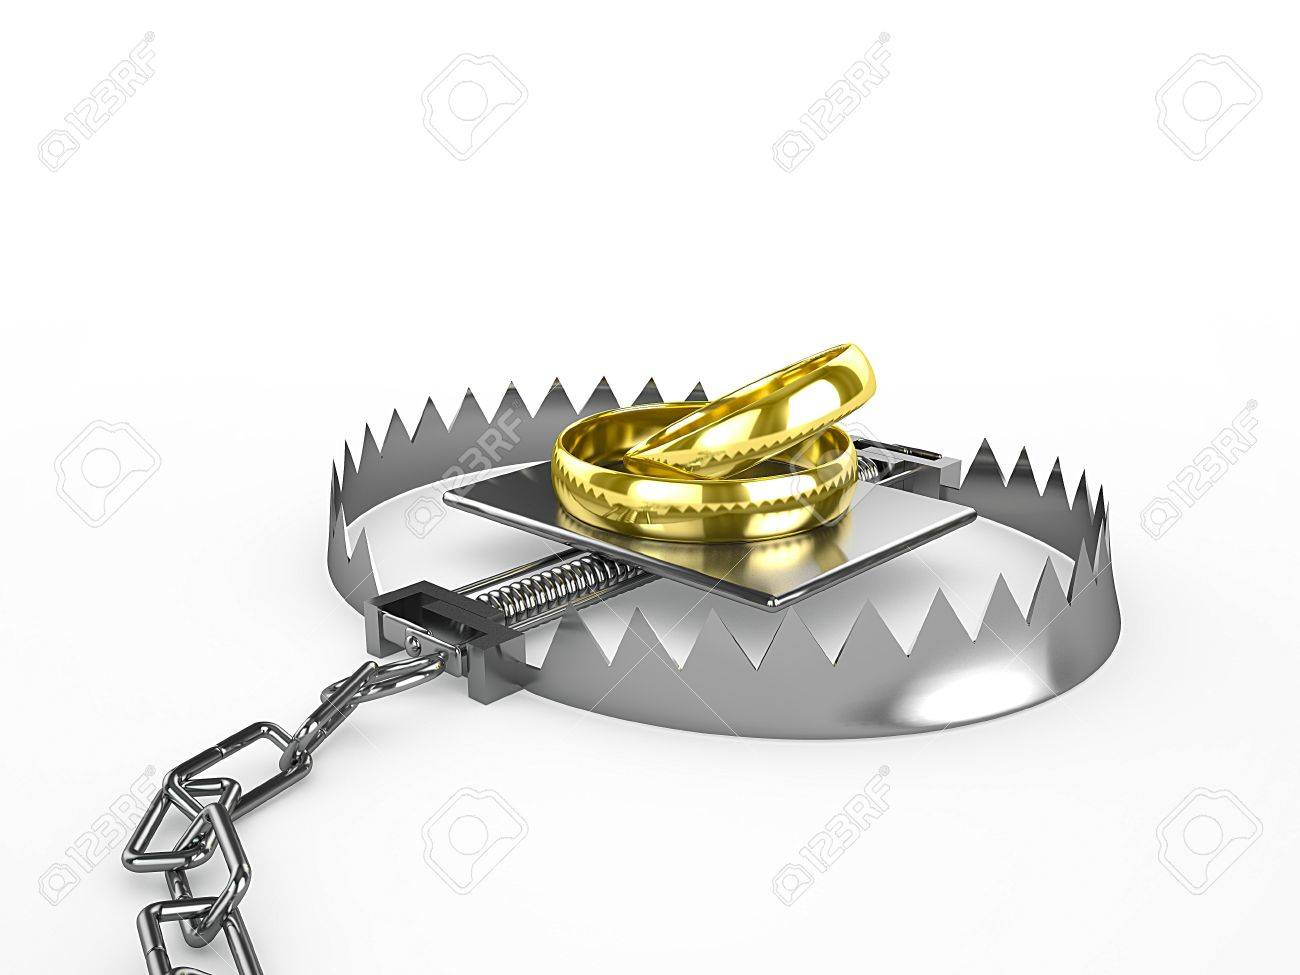 Two wedding rings - a bait in a trap, 3d render Stock Photo - 18572422